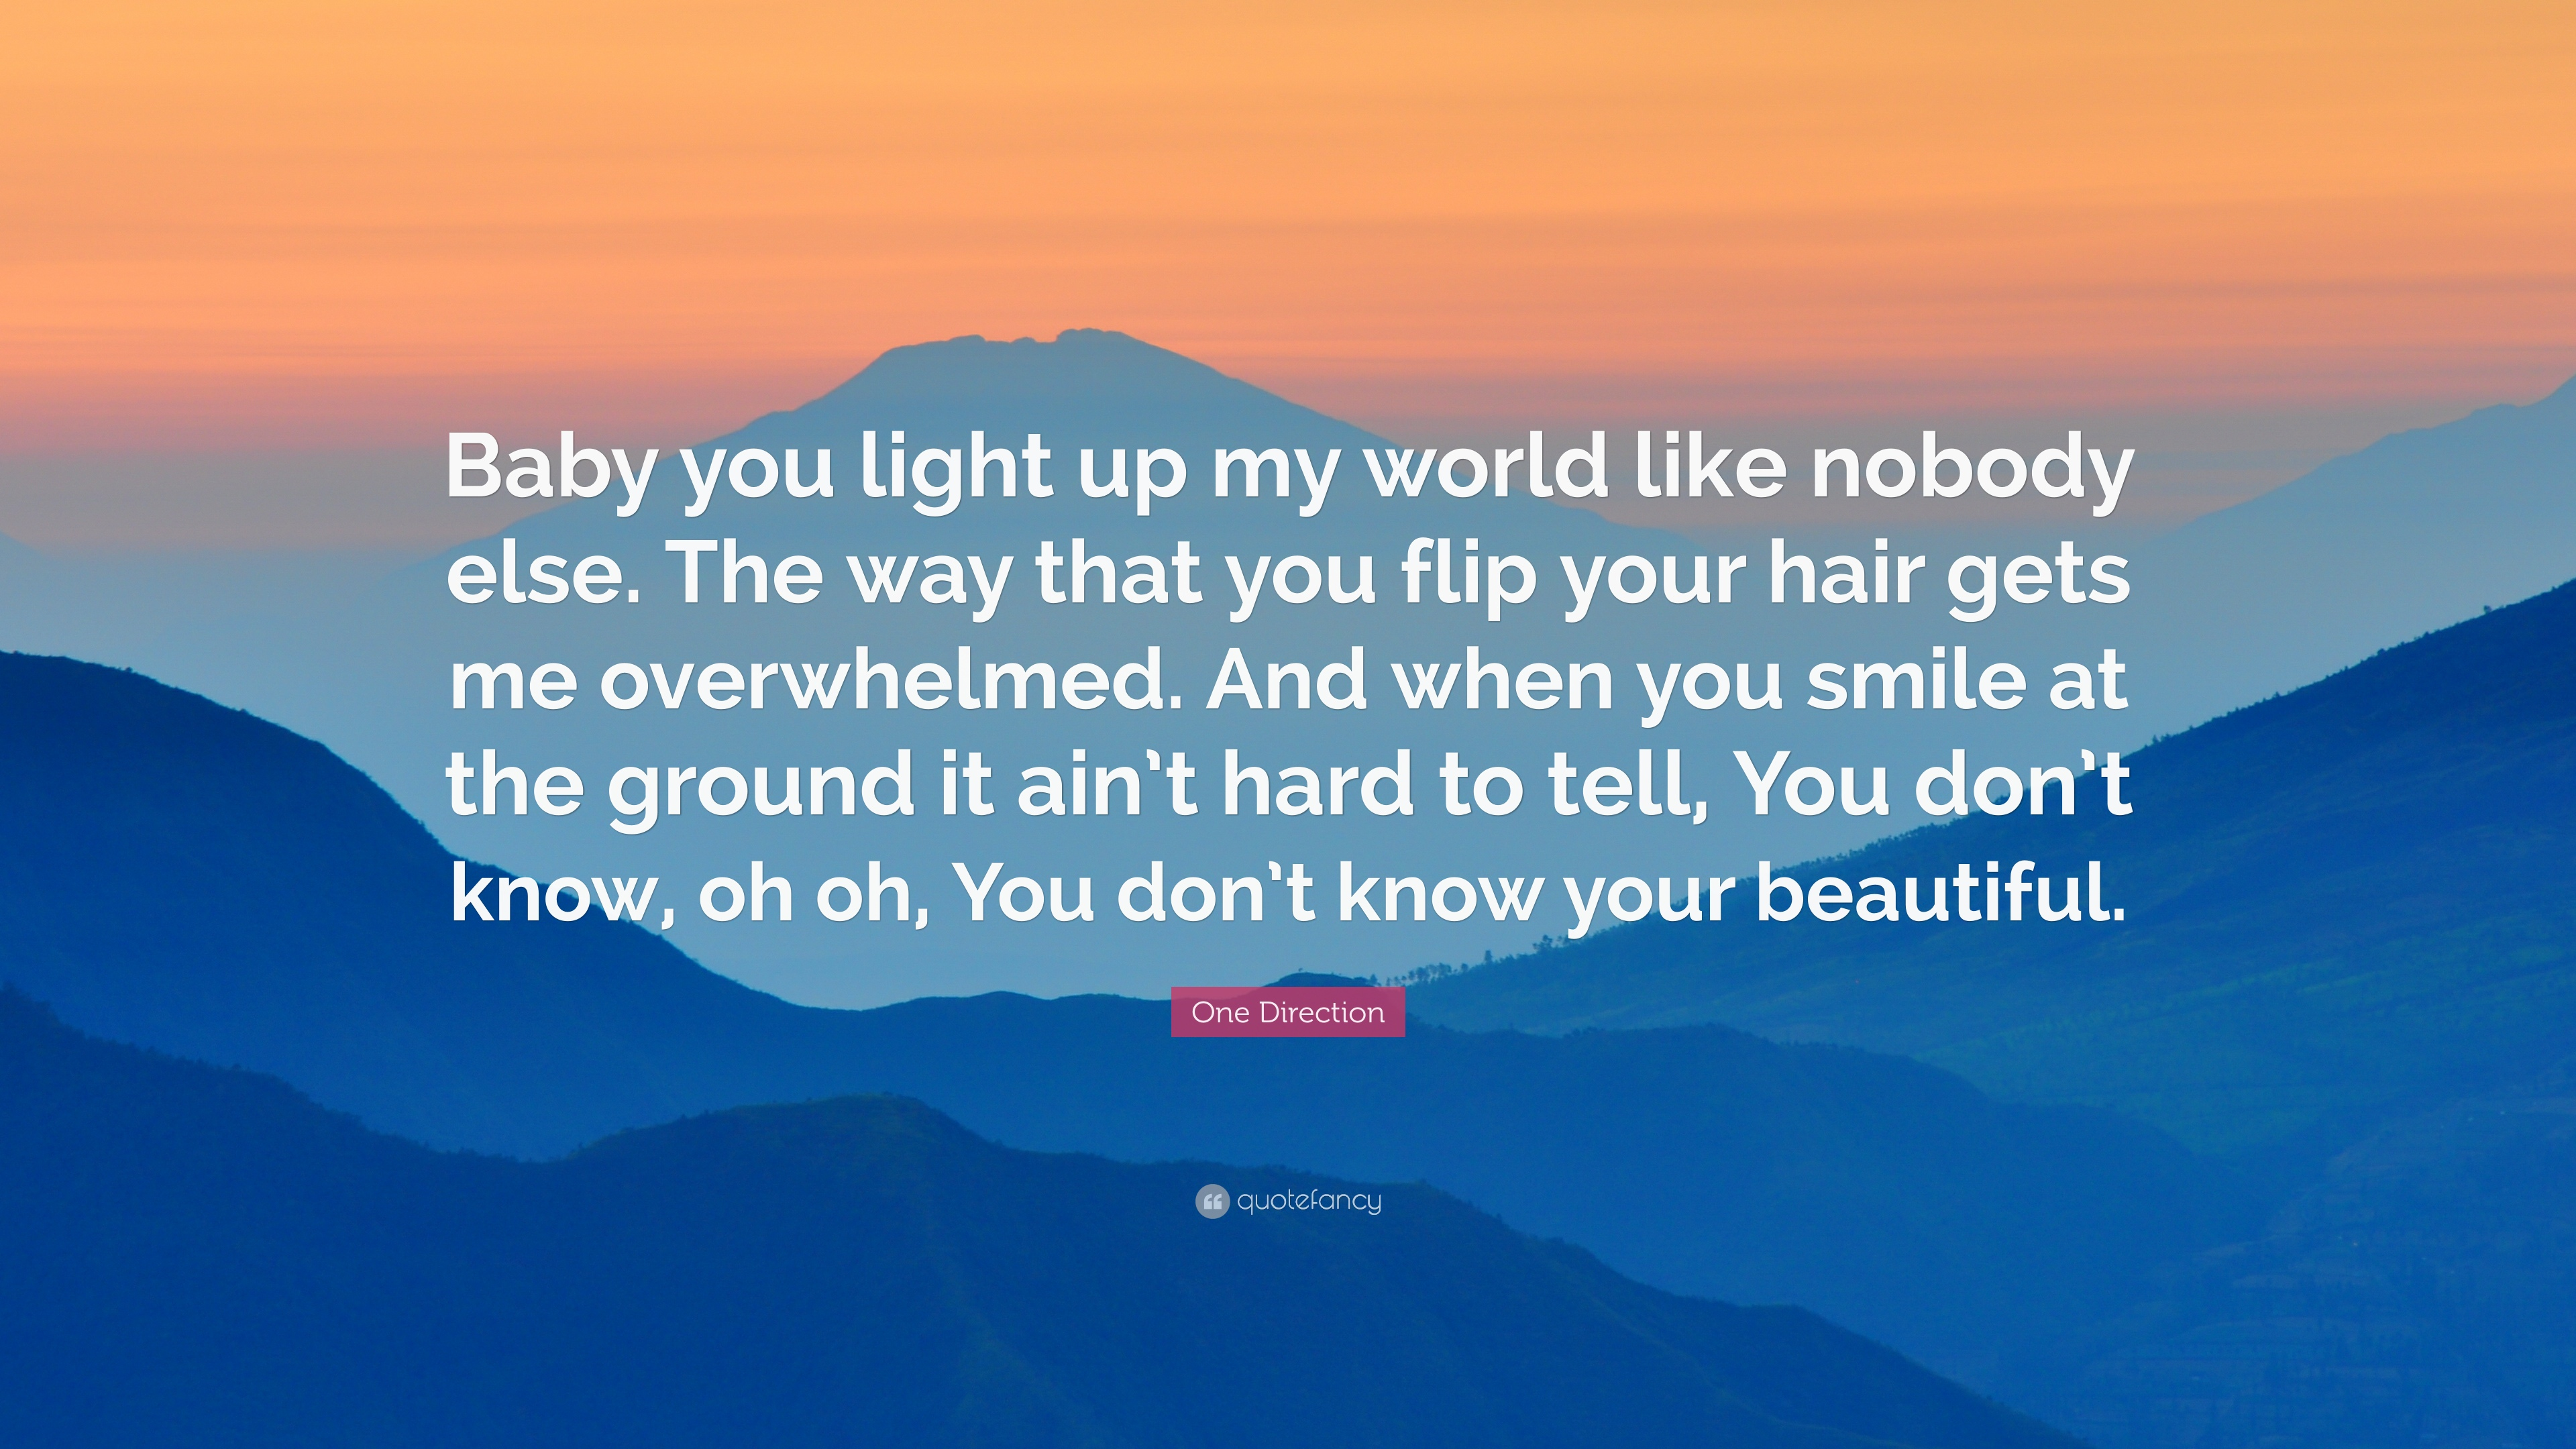 One Direction Quote Baby You Light Up My World Like Nobody Else